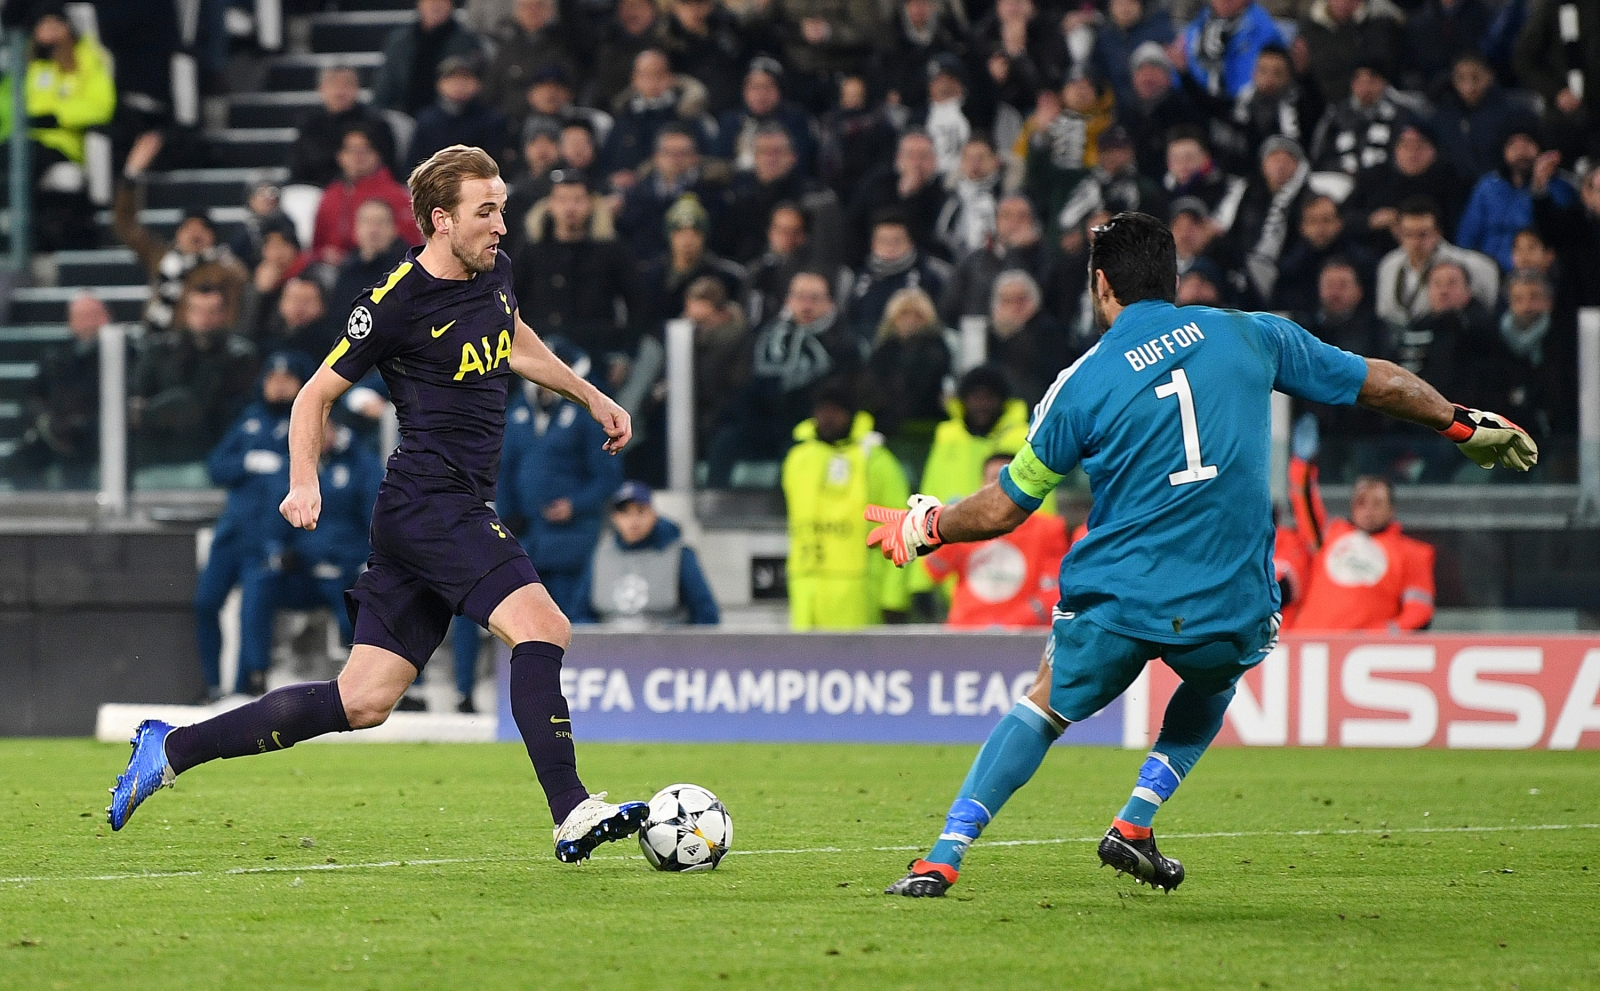 Harry Kane helps Tottenham fight back against Juventus after disastrous start